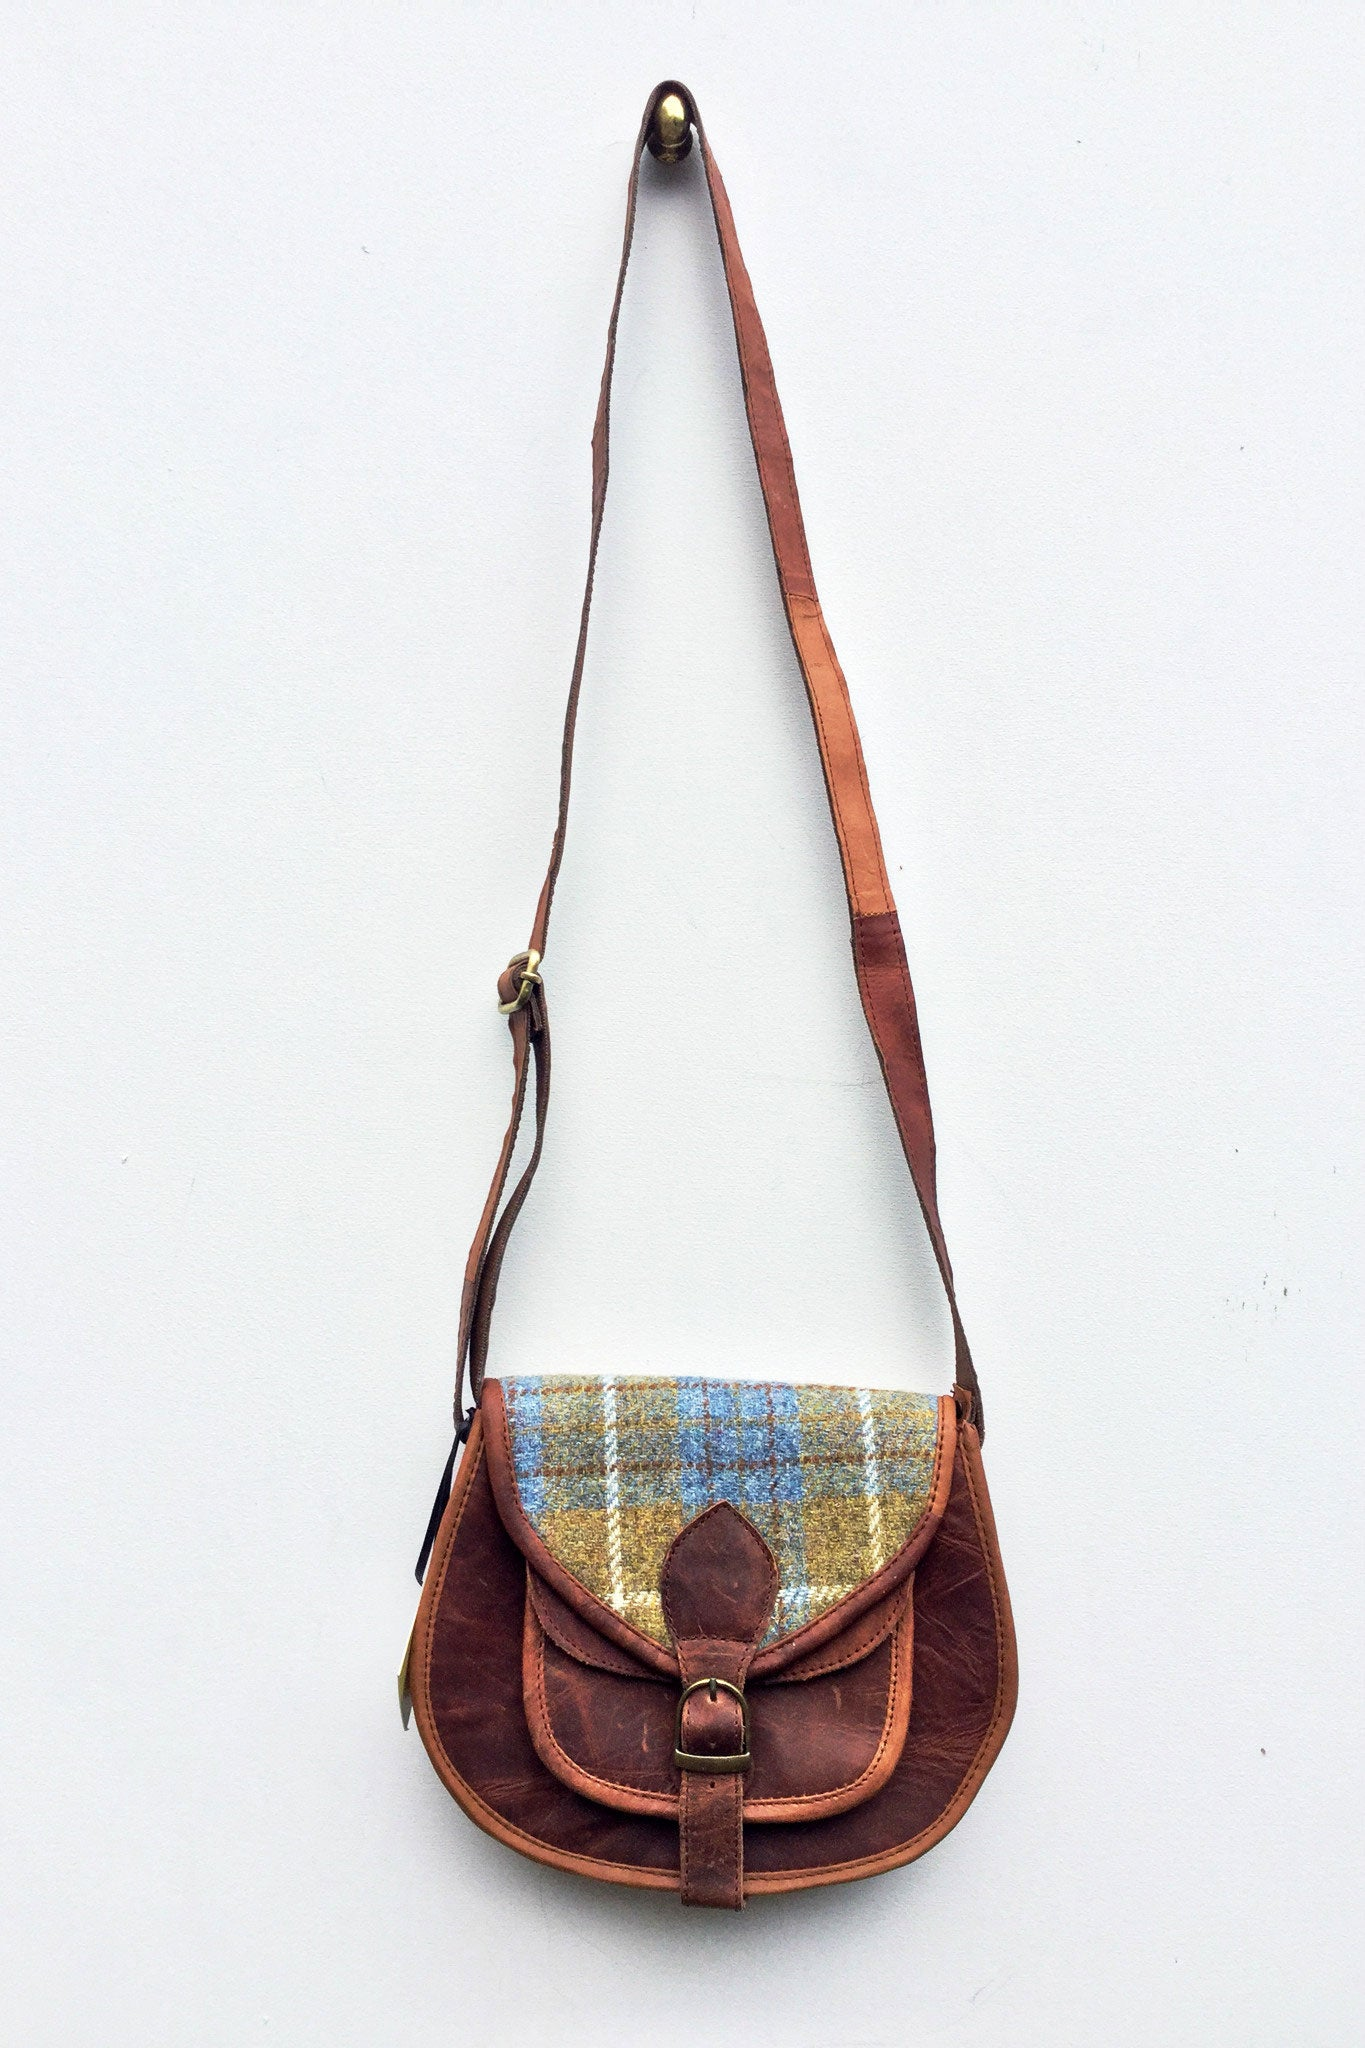 Harris Tweed cross body leather bag women ethical sustainable sketch london pastel blue green tartan